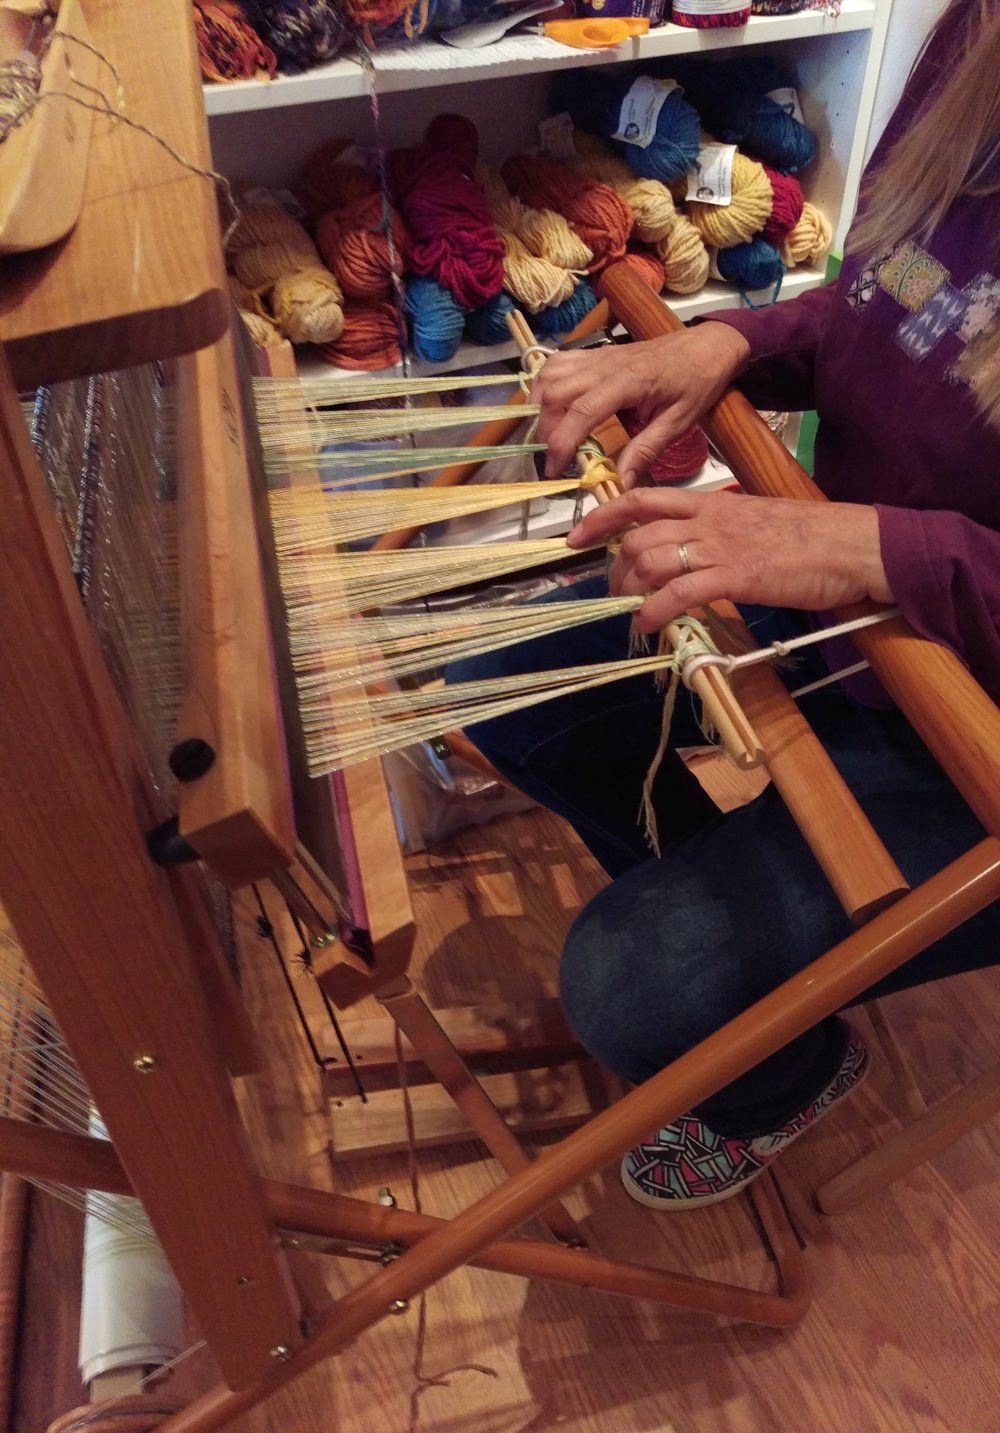 Saori Loom weaving demonstration by Dayna Fisk-Williams